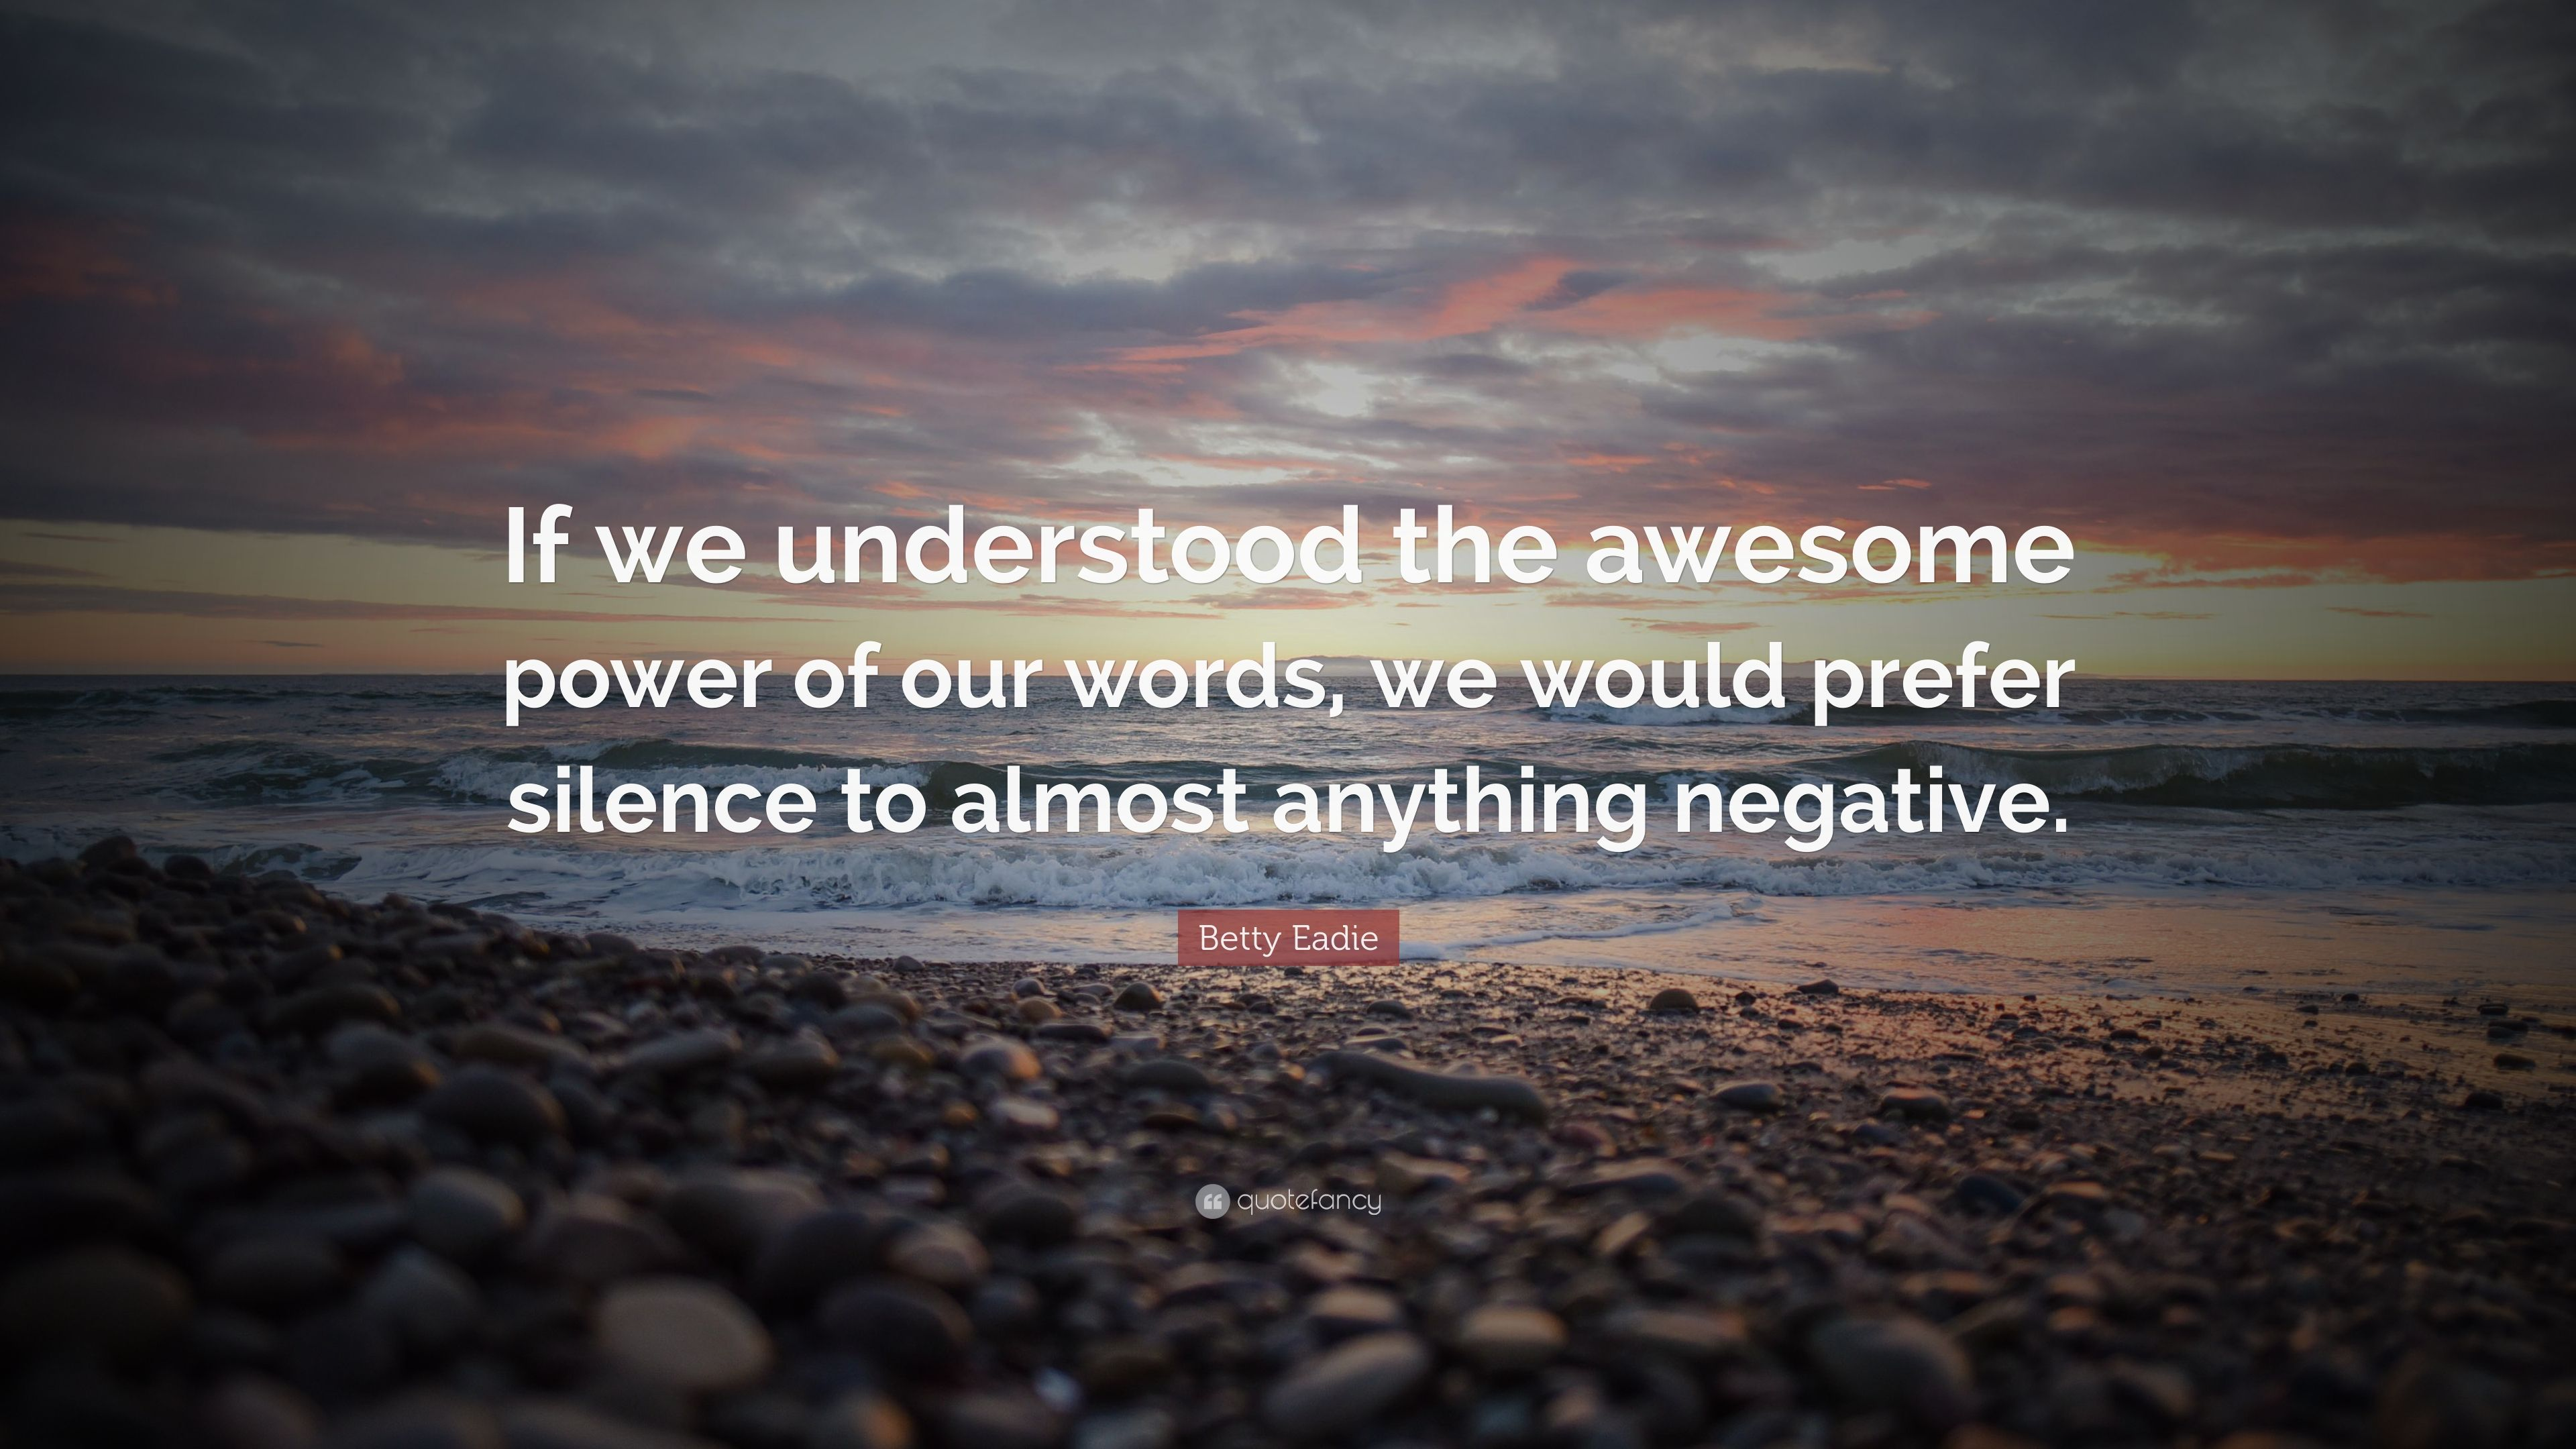 Betty Eadie Quote: U201cIf We Understood The Awesome Power Of Our Words, We